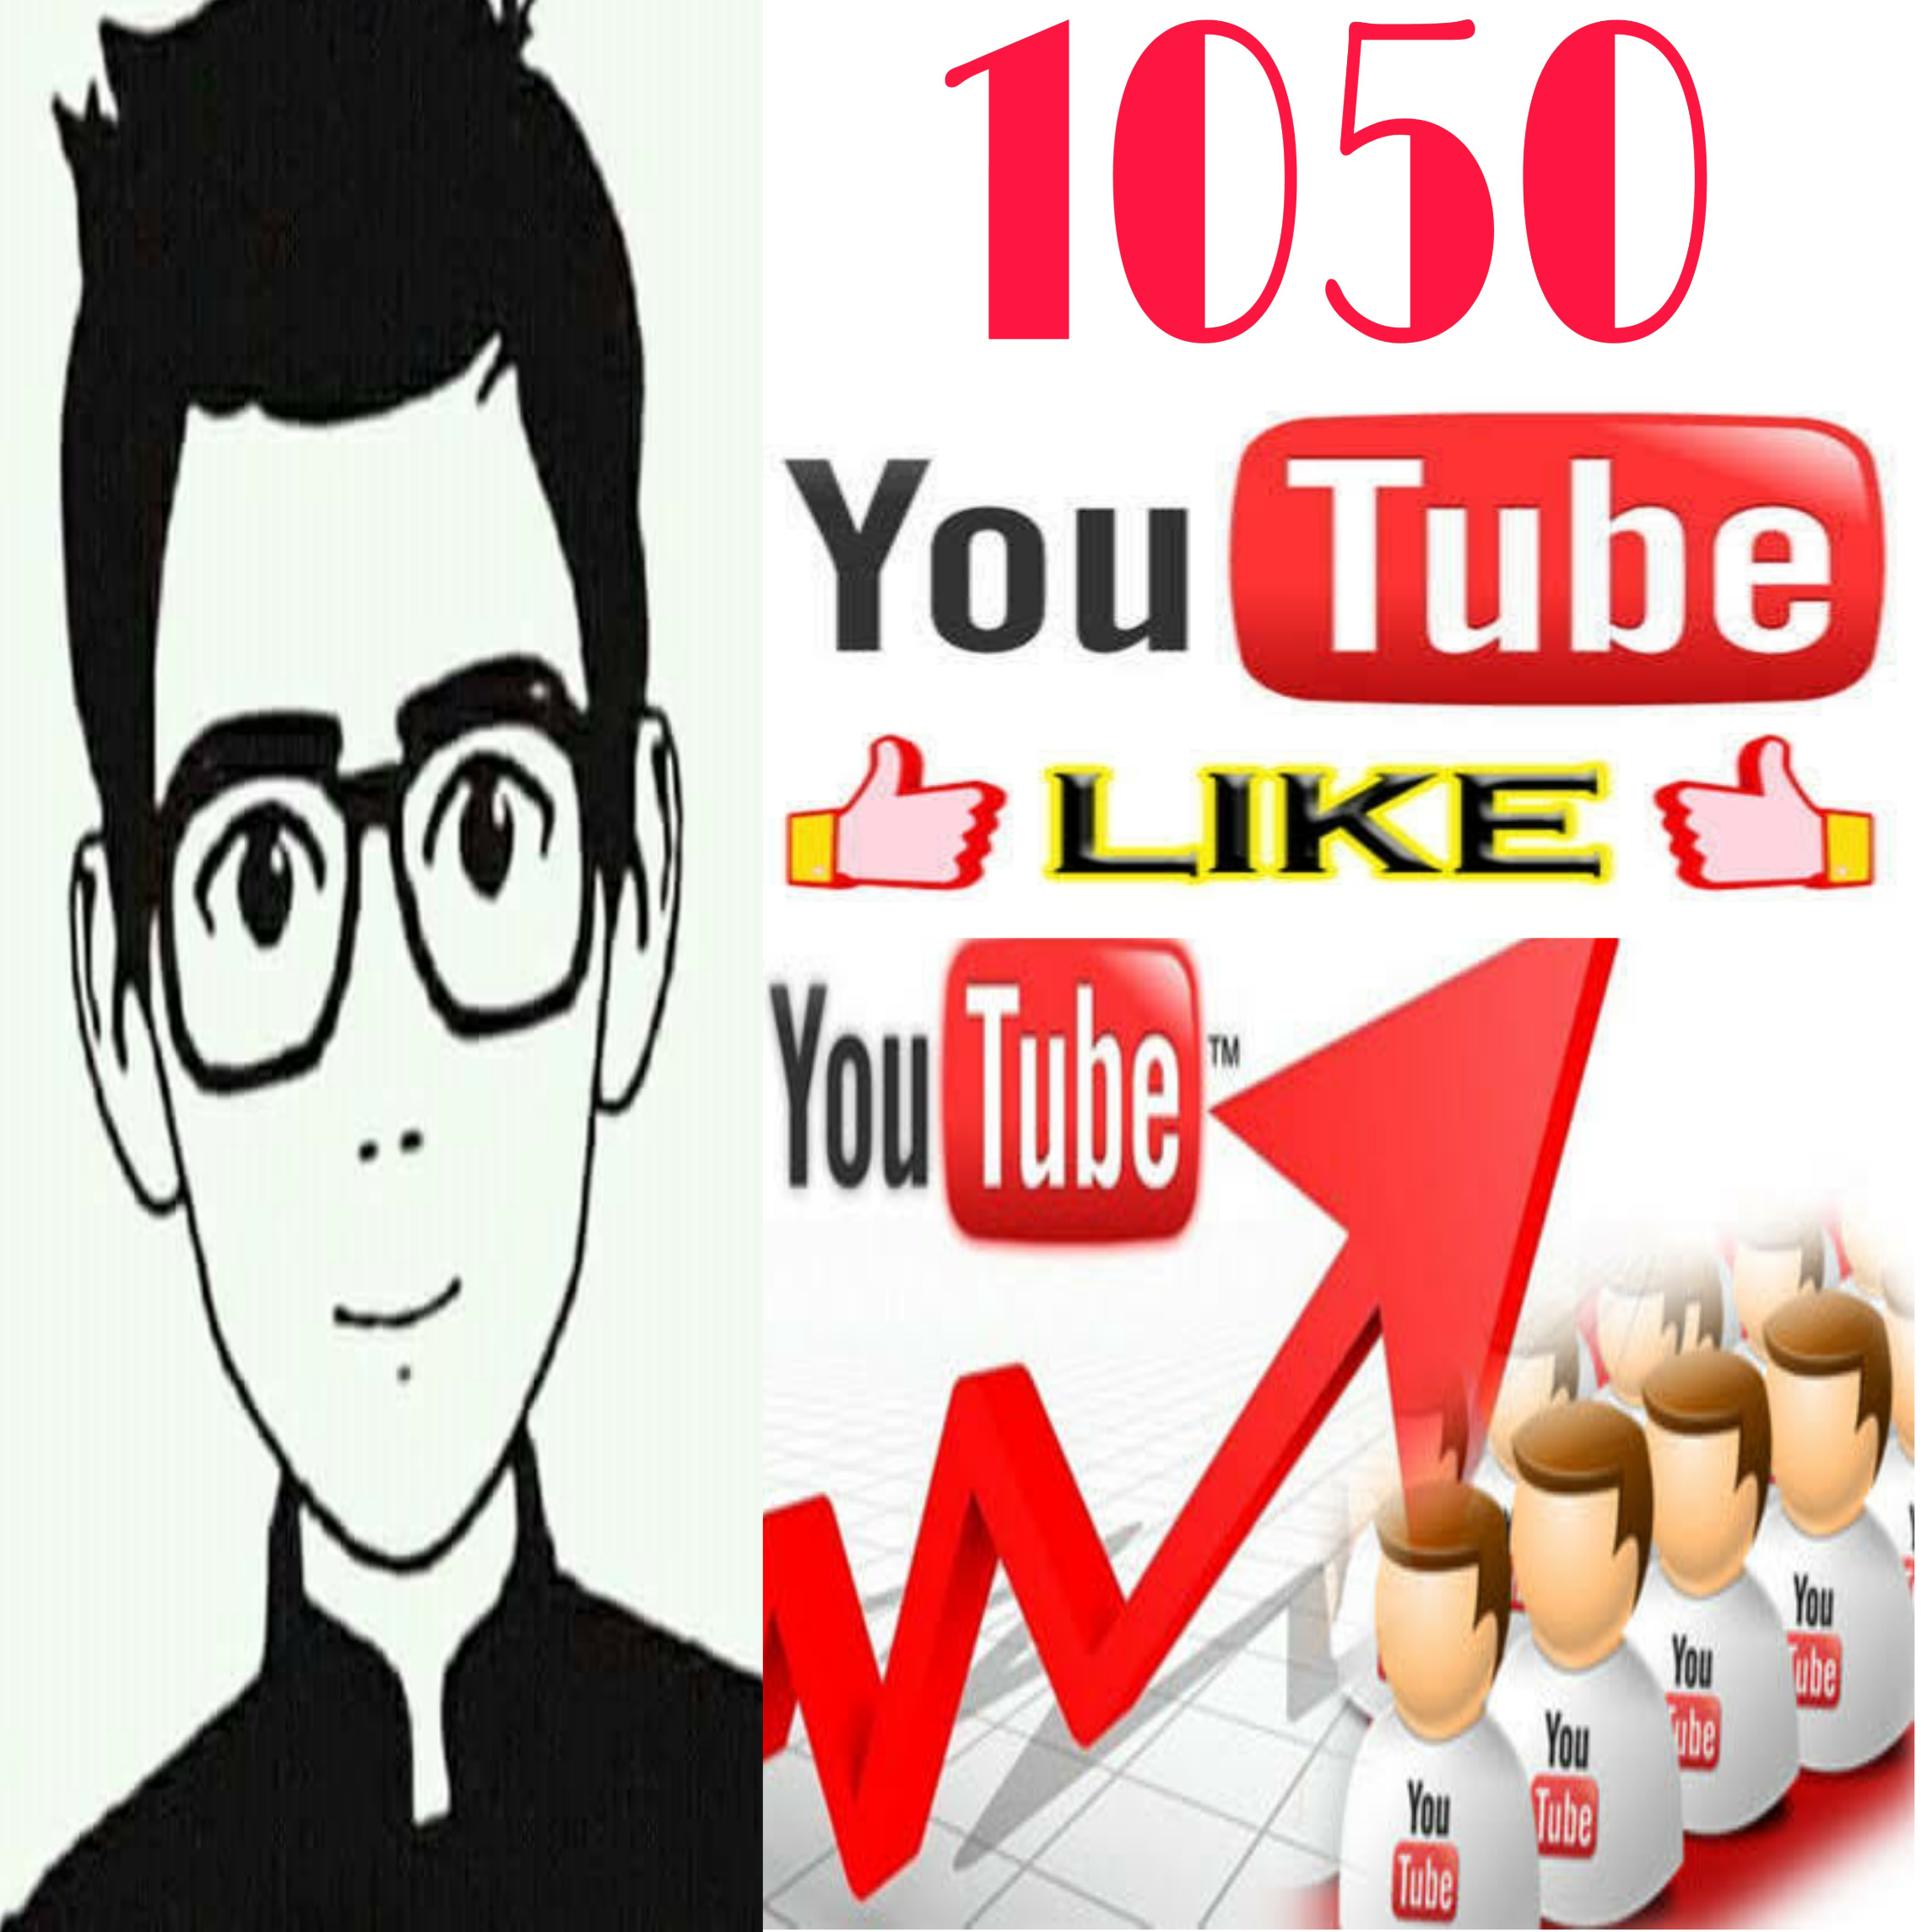 I provide 1050 high quality  likes on your video  non drop super fast in 2-4 hours